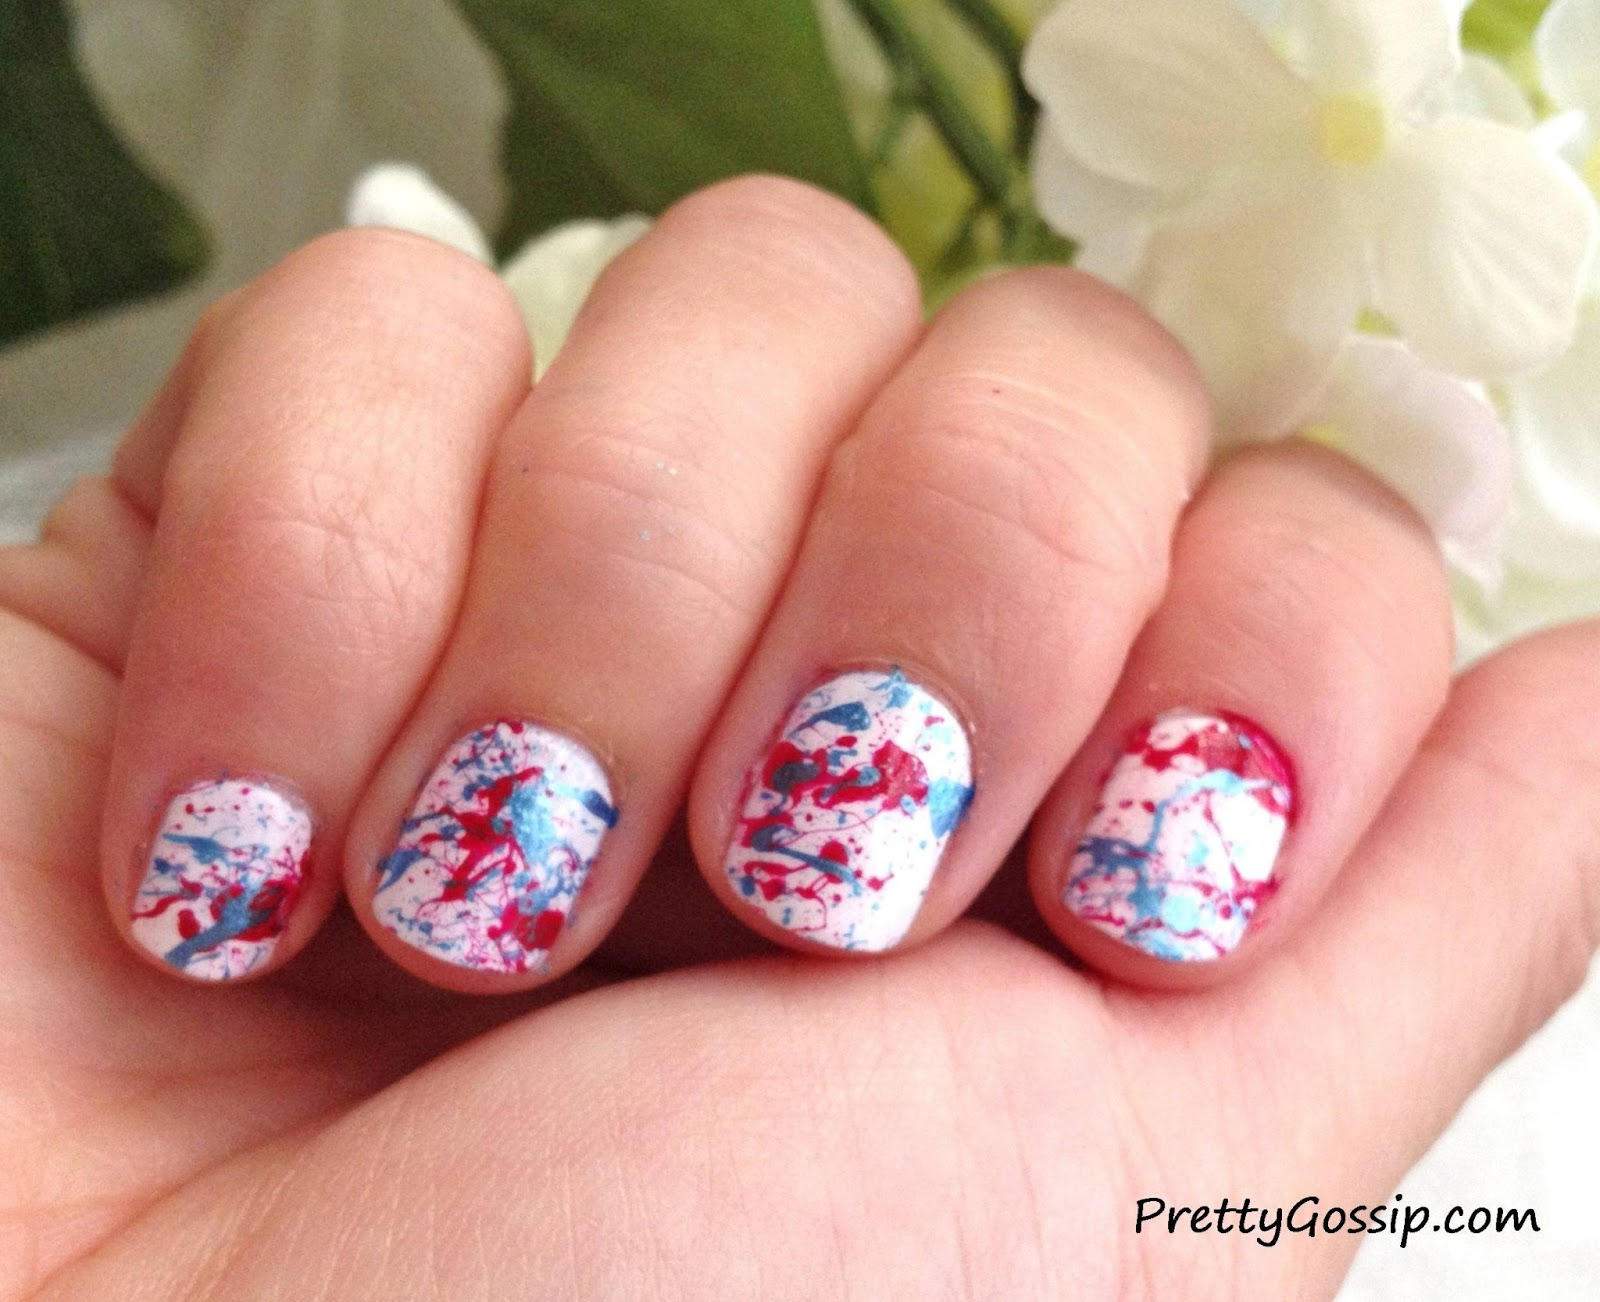 4th of July Nail Ideas!: Easy 4th of July Splatter Nail Design